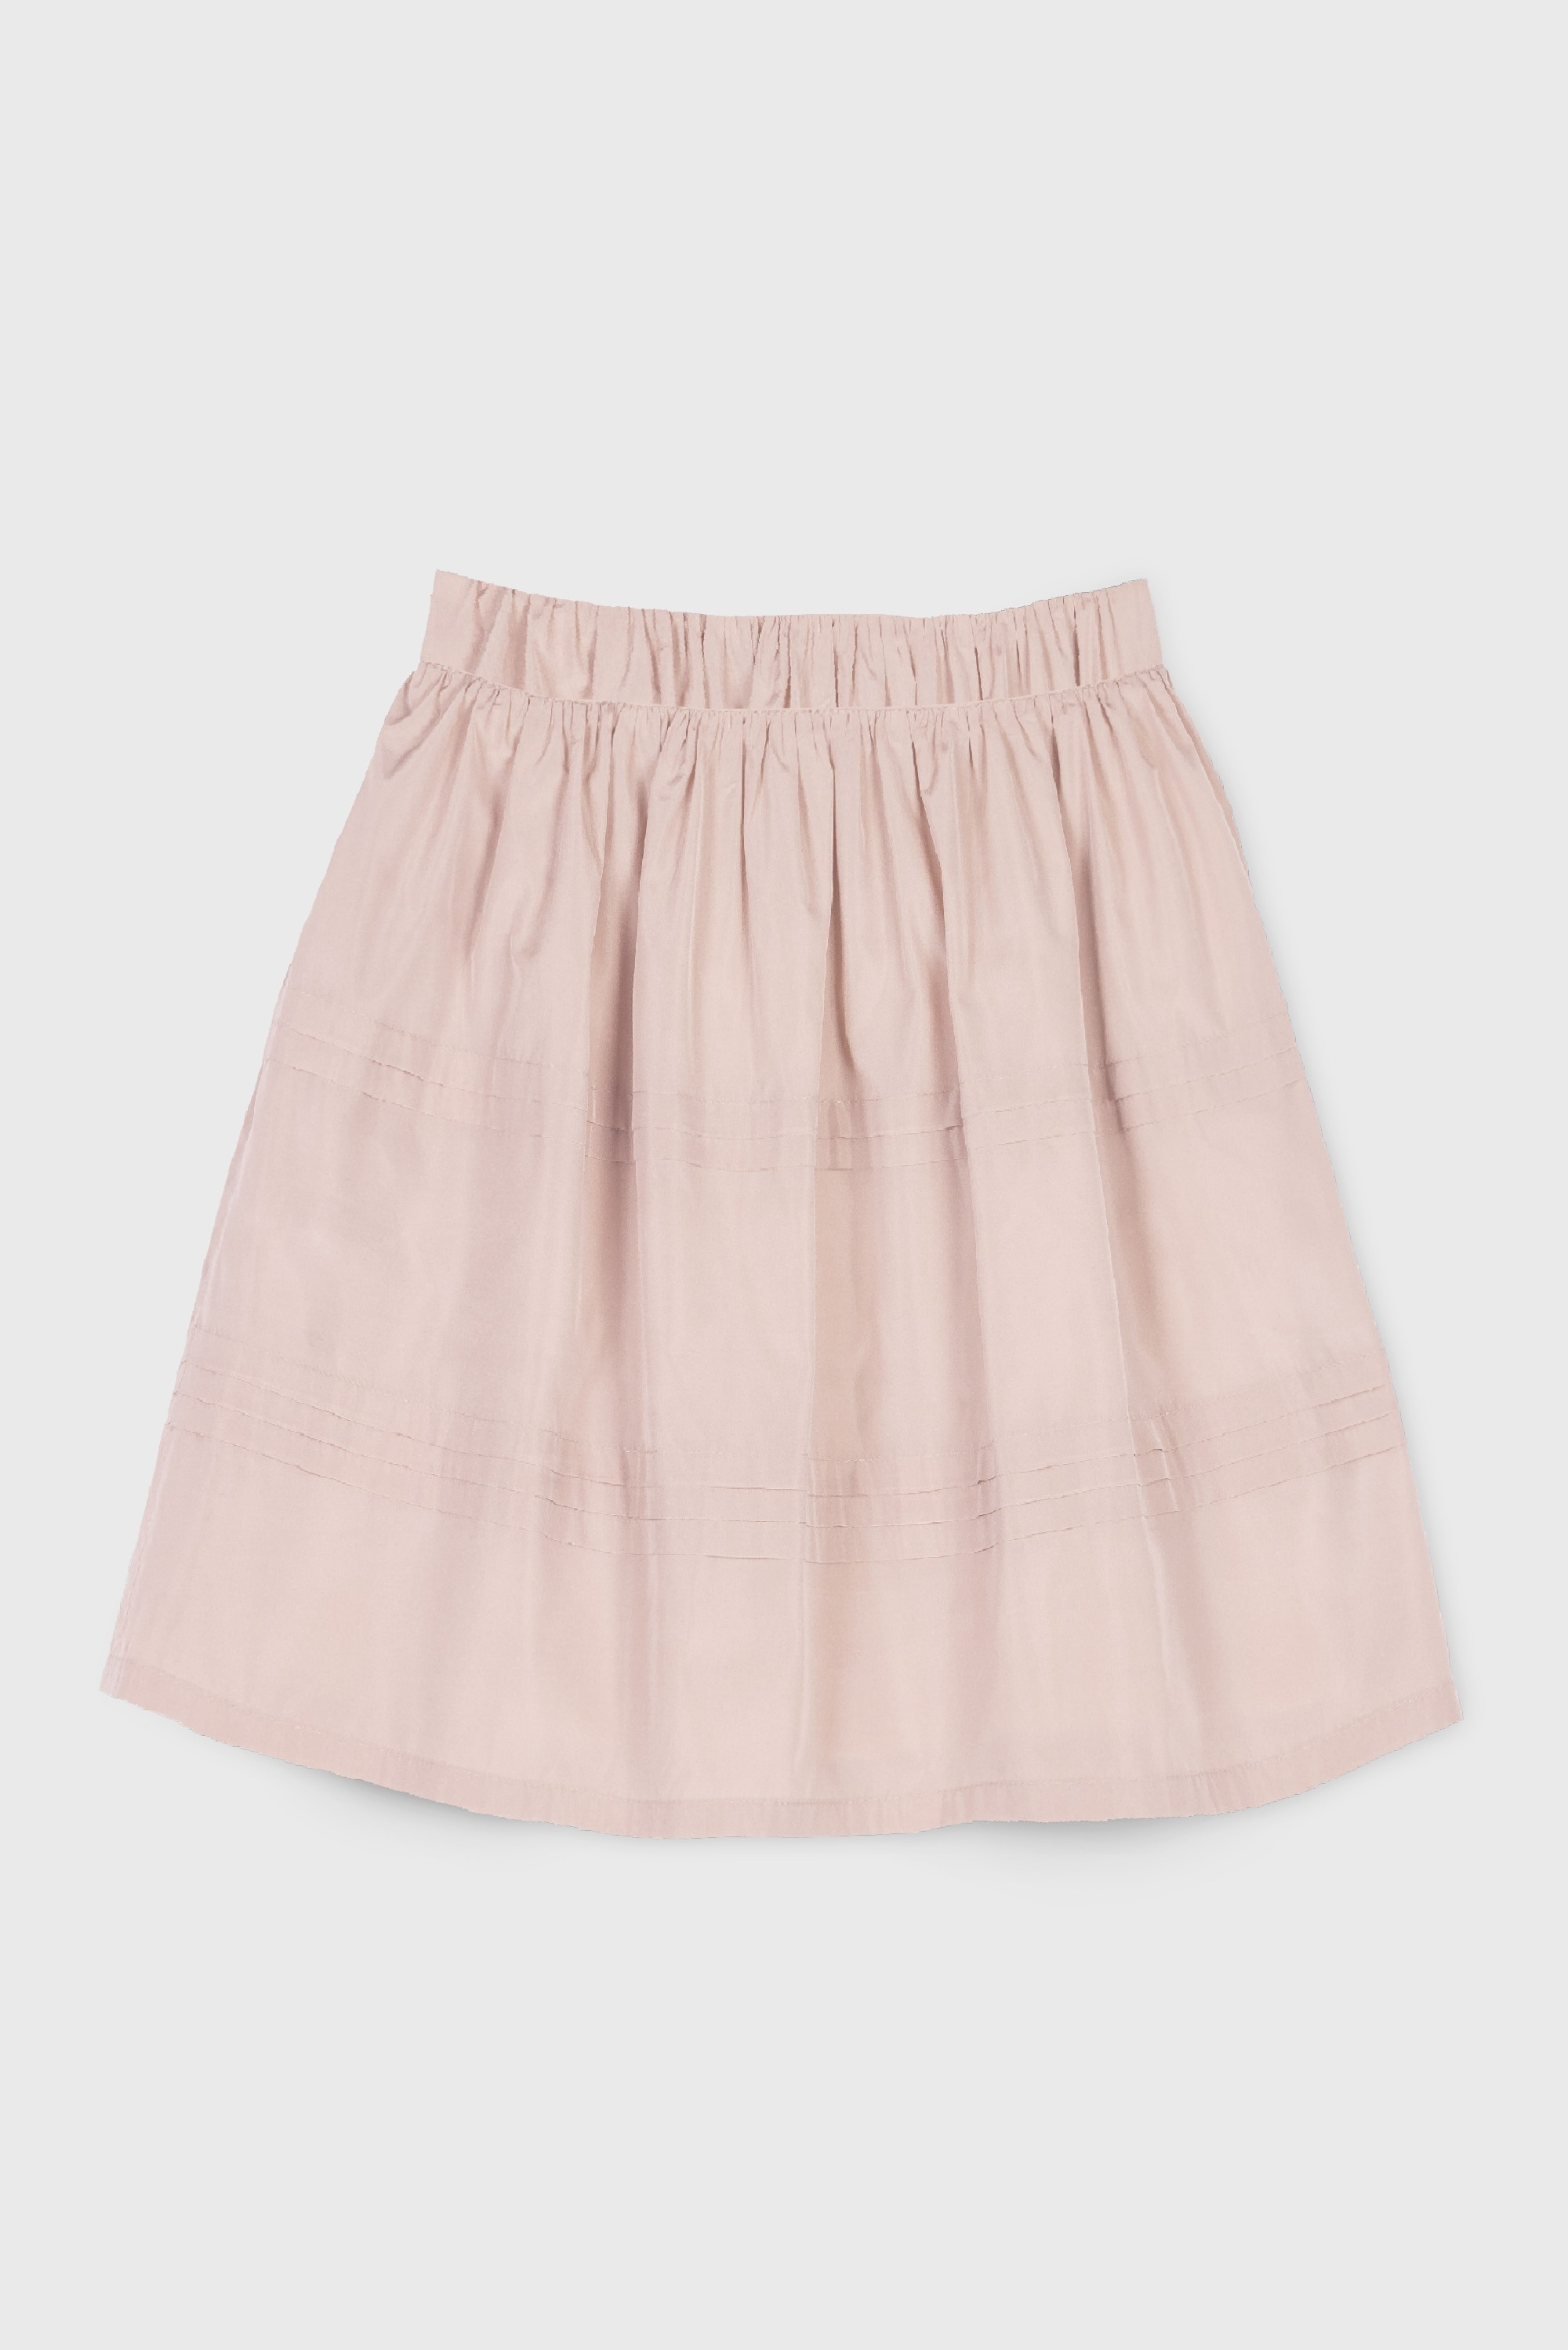 PINK TAFFETA PLEATED SKIRT